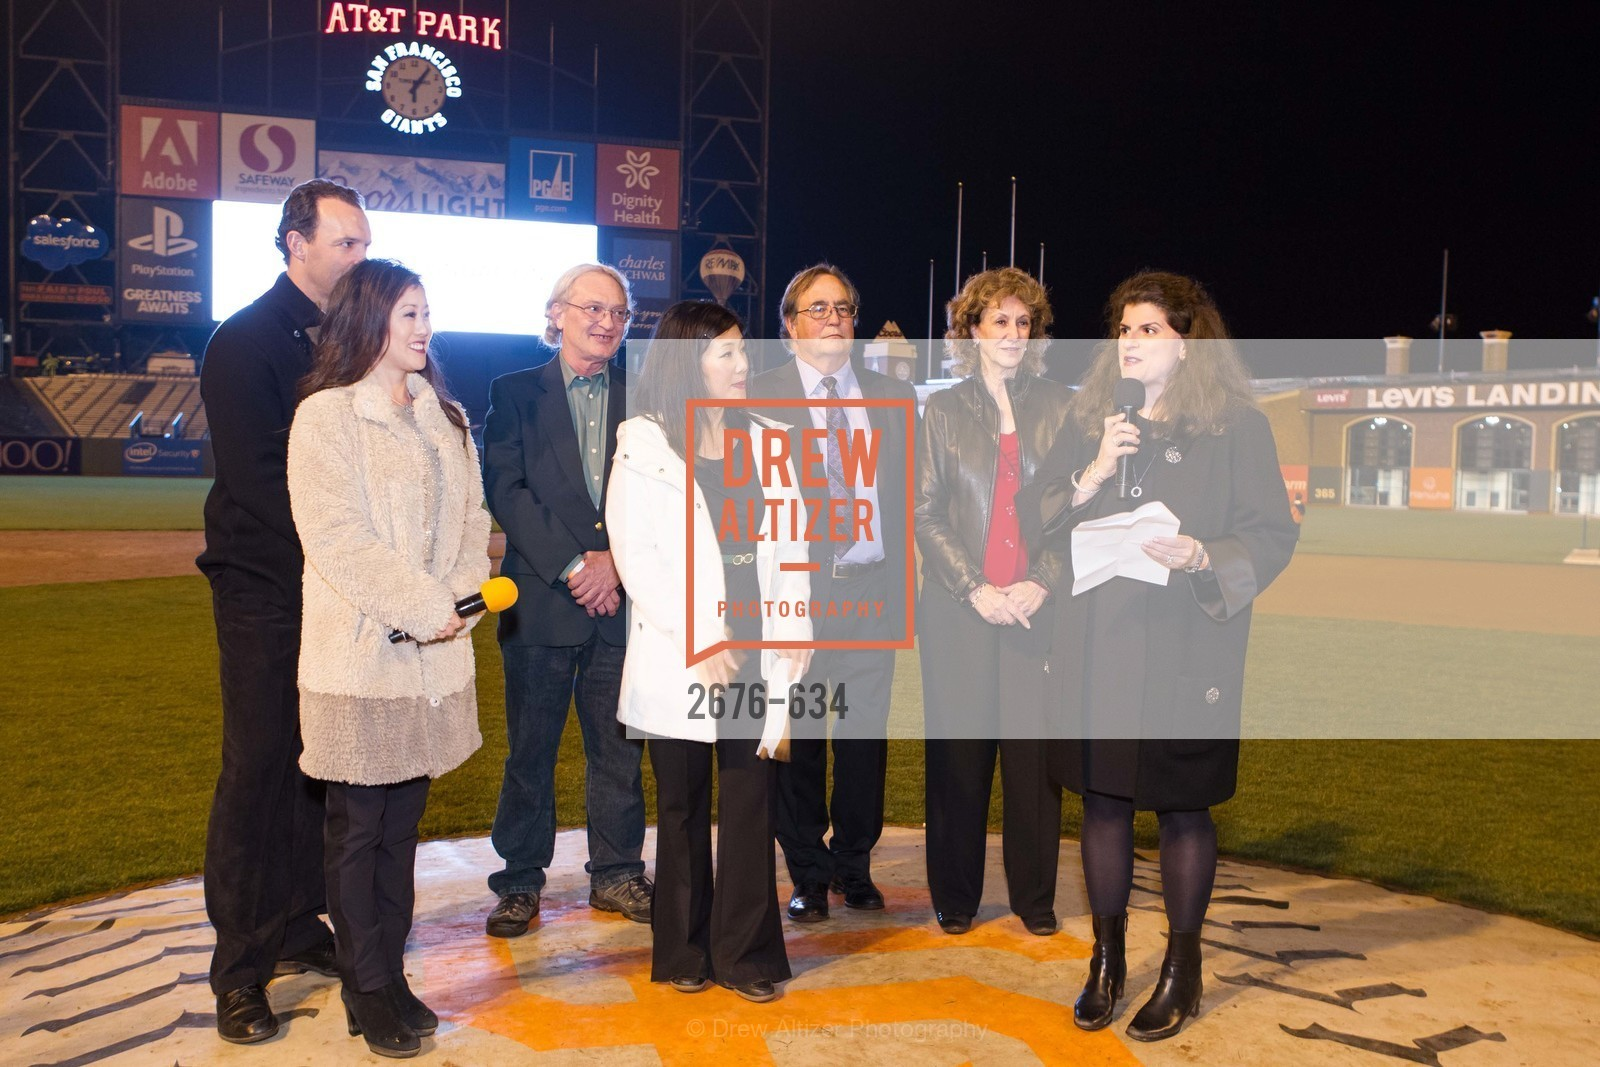 Kristi Yamaguchi, Bret Hedican, Mike Herbst, Michael Baker, Liane Baker, Amy Wender-Hoch, Holiday Heroes 2015, AT&T Park, December 7th, 2015,Drew Altizer, Drew Altizer Photography, full-service agency, private events, San Francisco photographer, photographer california